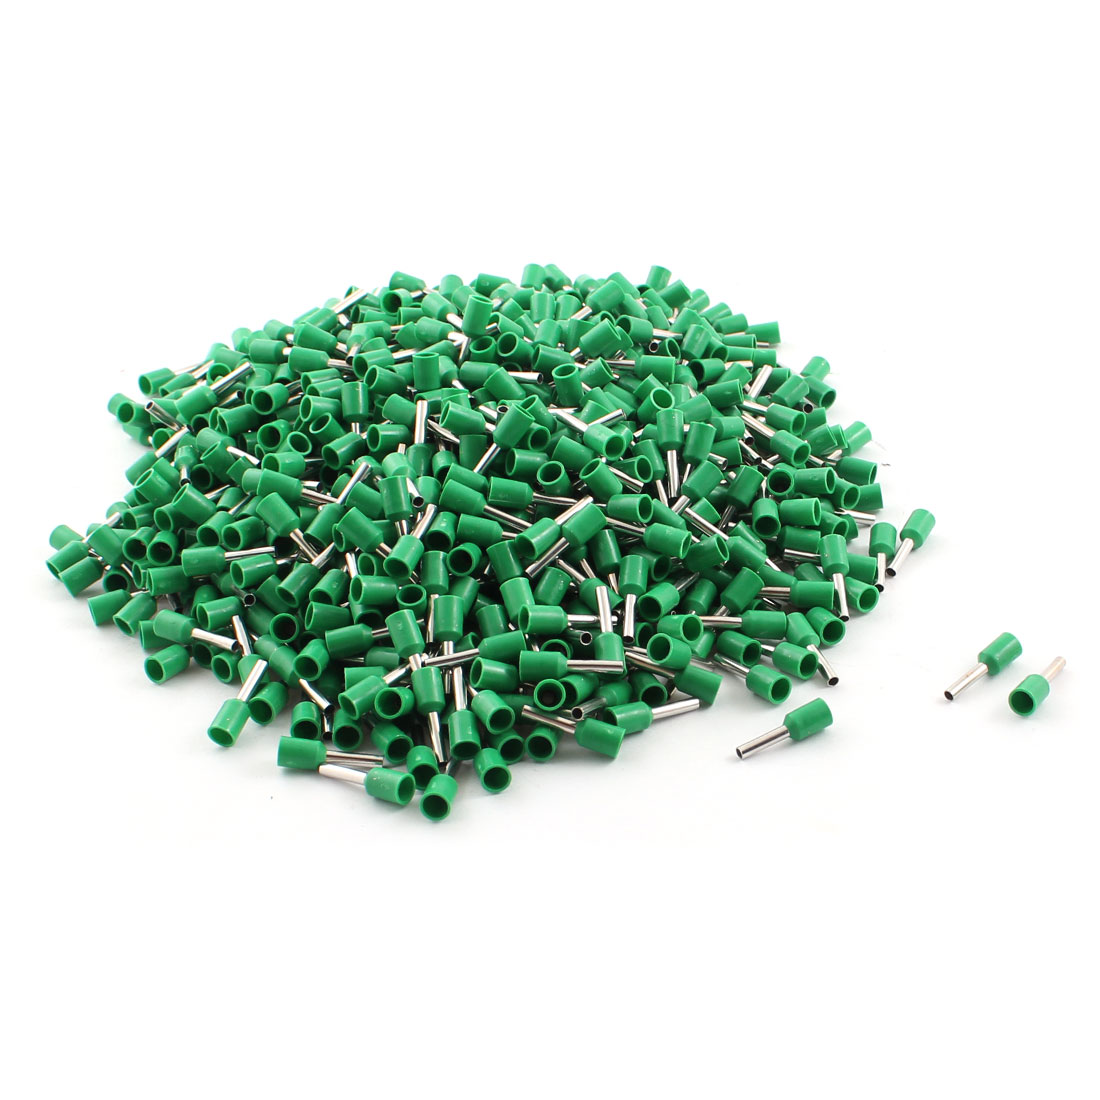 1000Pcs E1508 16AWG Green Tube Tublar Style Plastic Insulated Cable Wire Ends Terminals